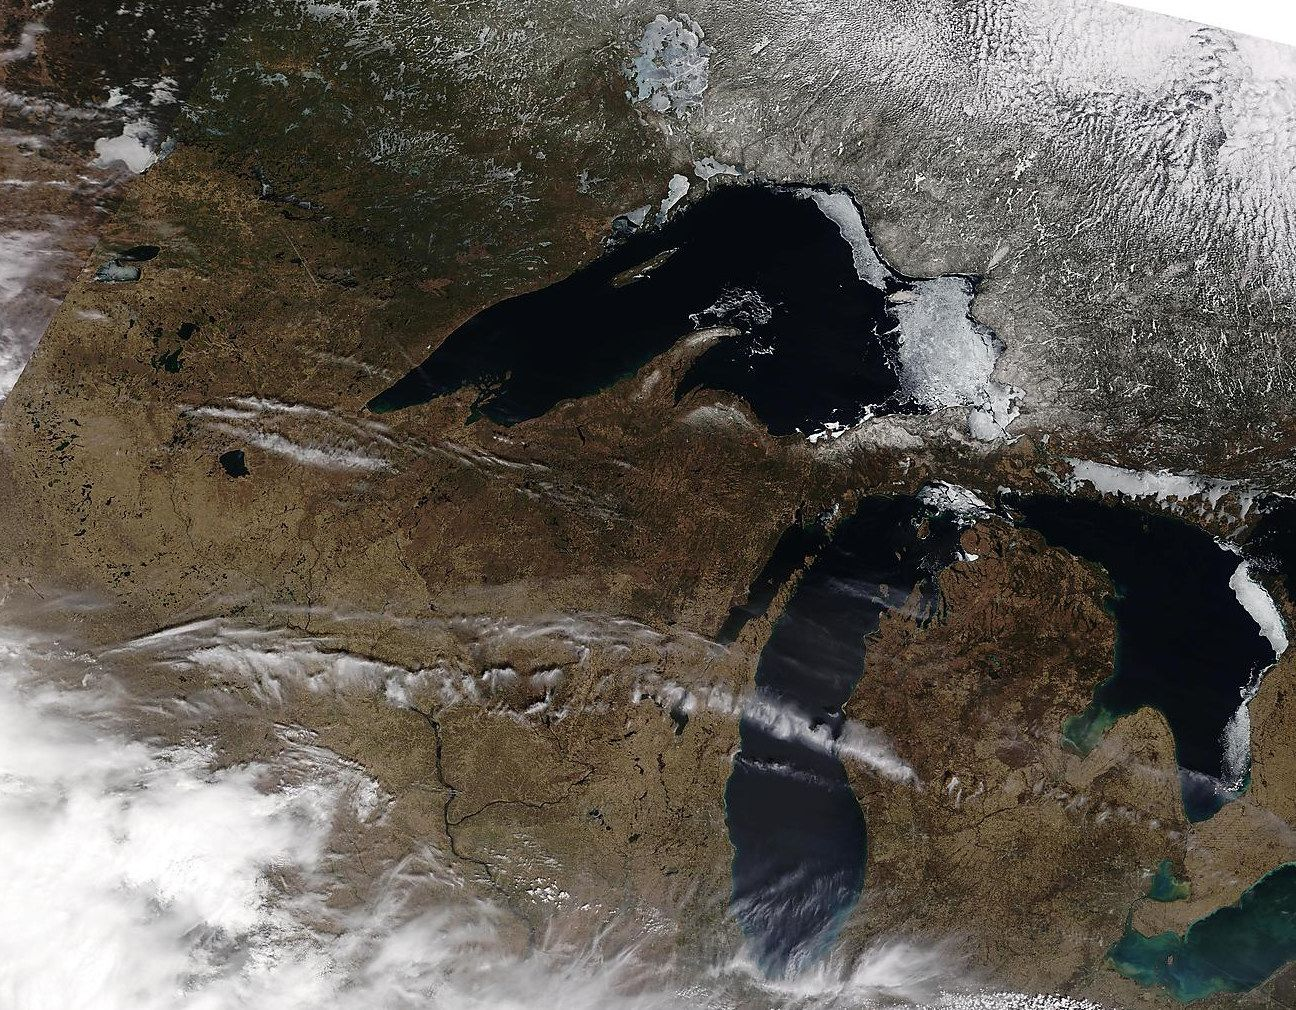 terra satellite on 2015-4-18, very pleasant in   March and April.